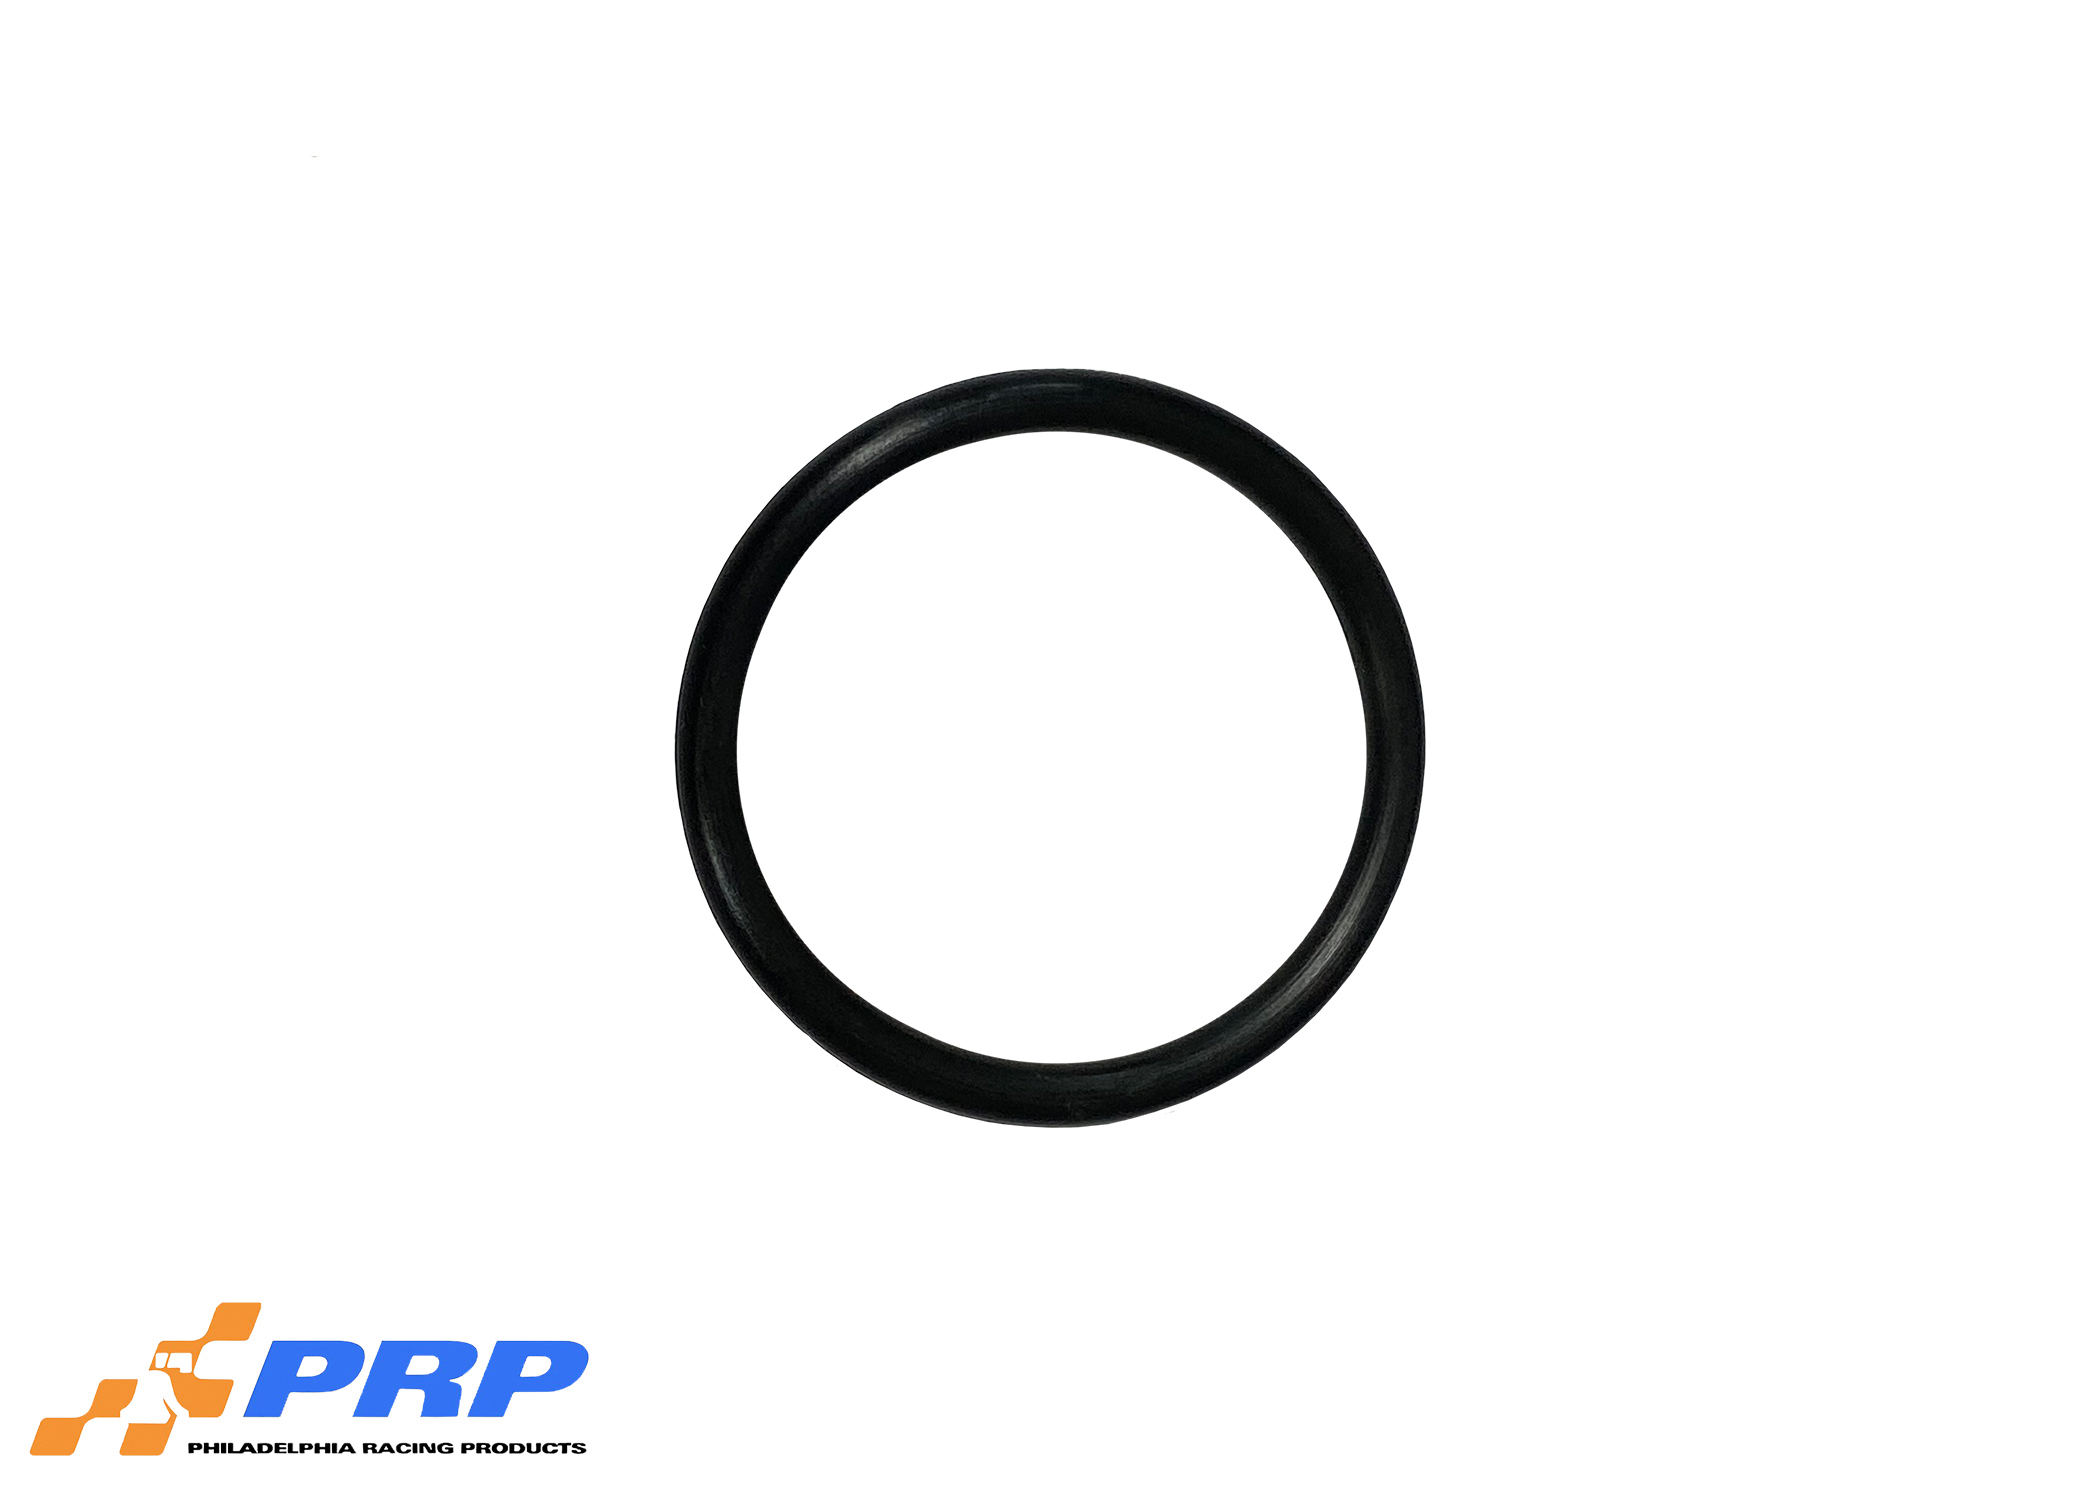 Small Black Filler cap Replacement O-ring from PRP Racing Products